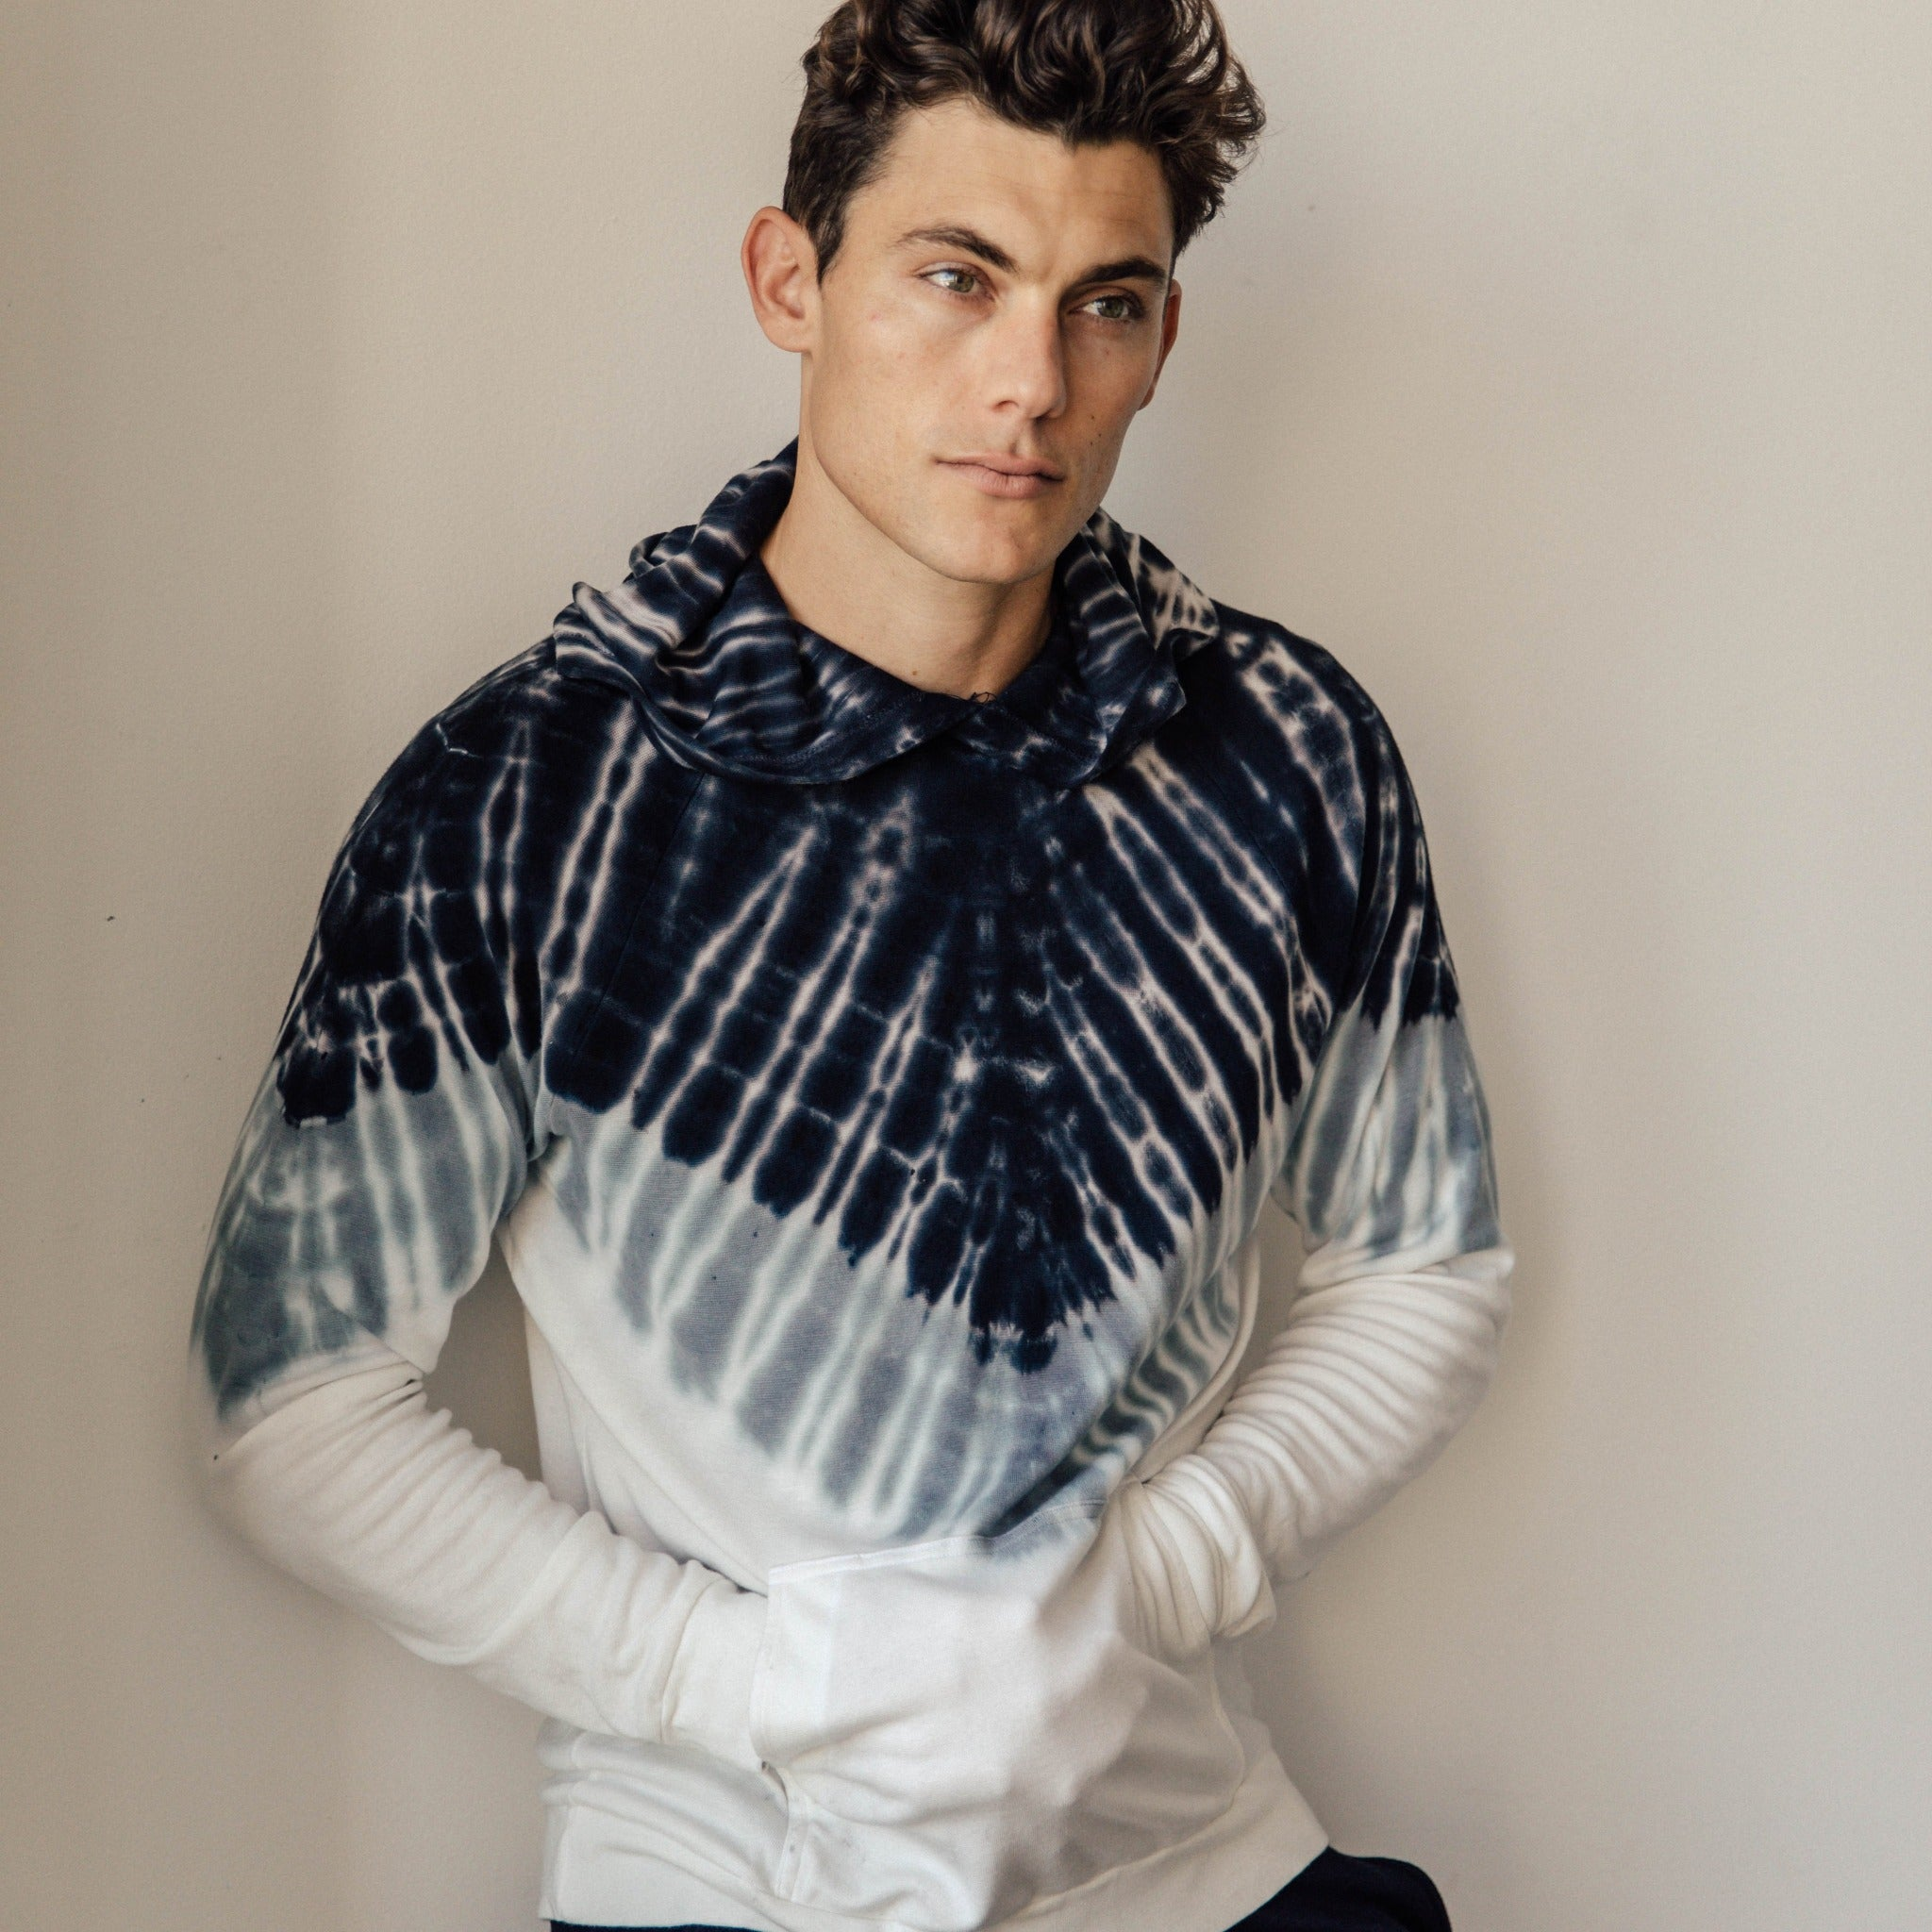 Bamboo Pull Over Hoodie in Black Dye - Mitchell Evan